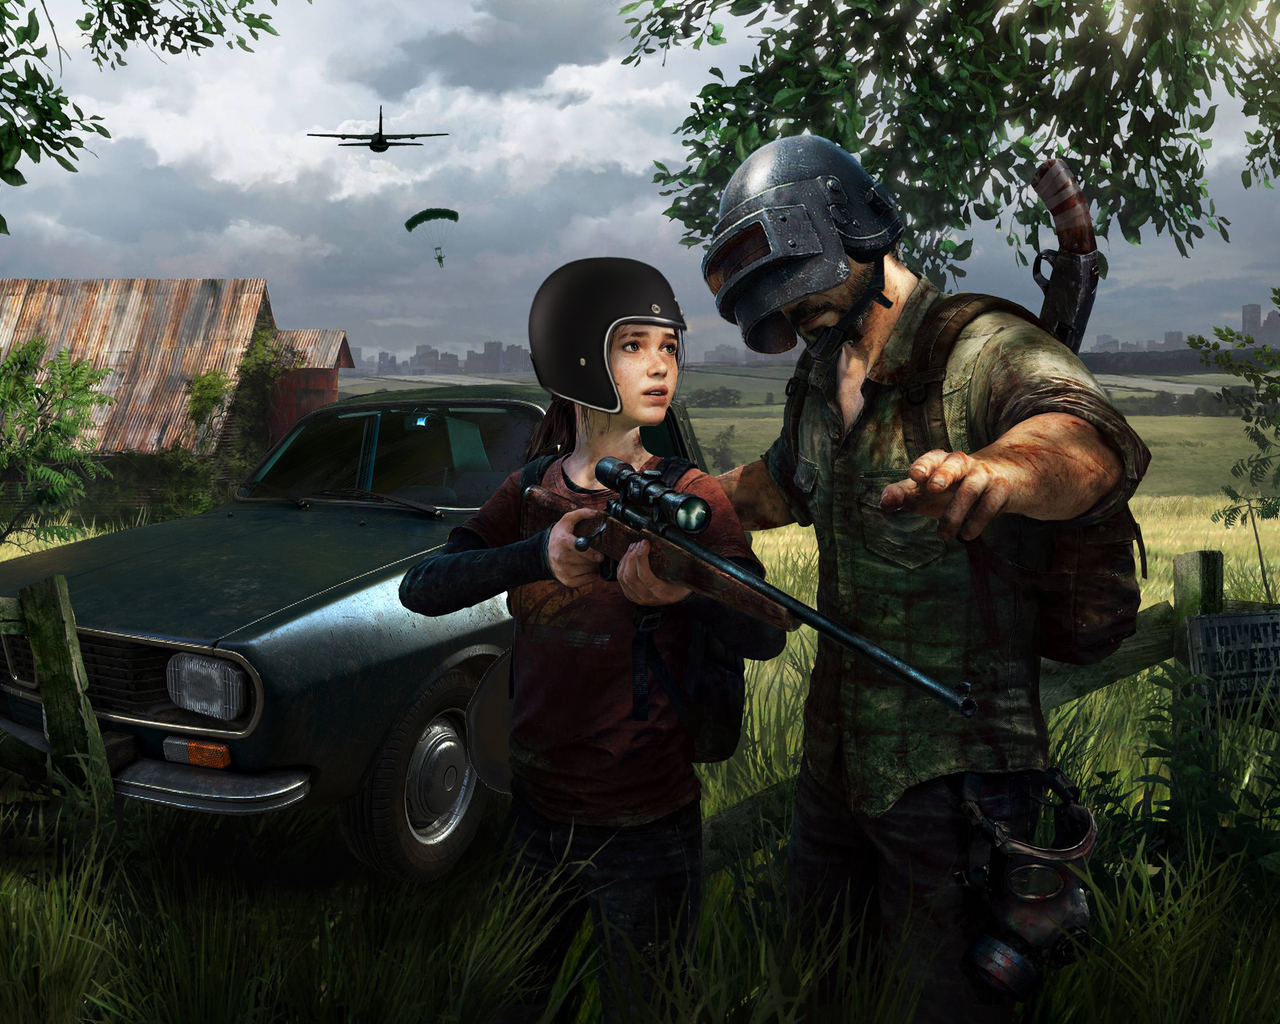 1280x1024 The Last Of Us As Pubg Character 1280x1024 Resolution Hd